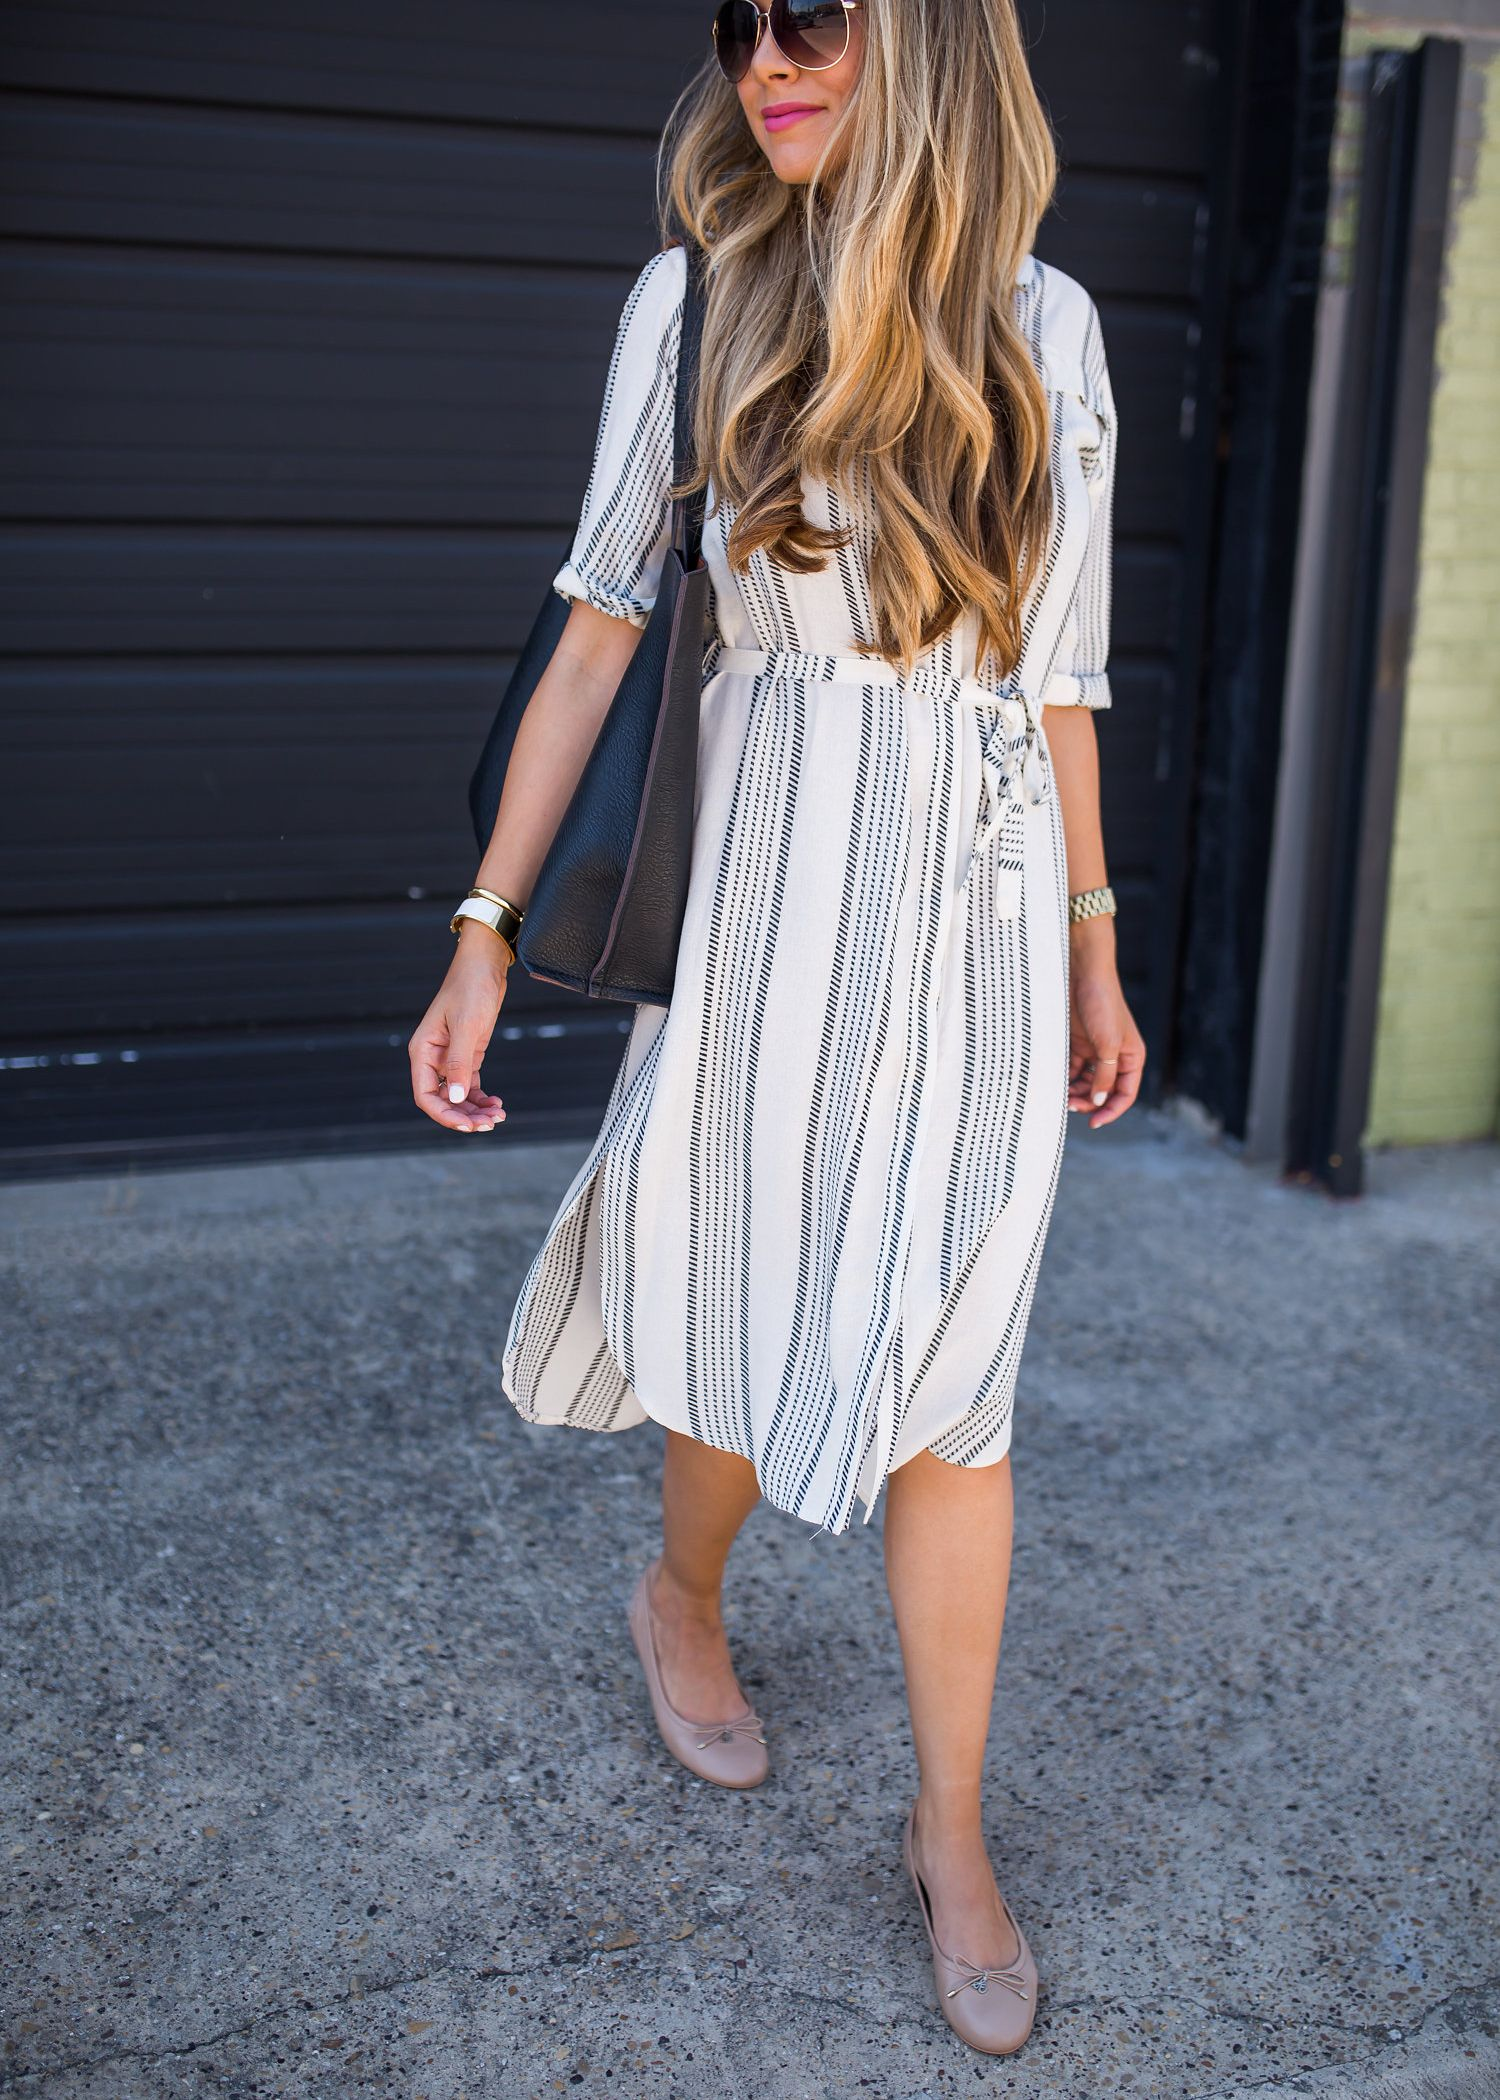 a9975db0896 Ashley Robertson in Striped Shirtdress Outfit. Striped Shirt Dress    Classic Flats by The Teacher Diva available at  nordstrom  topshop